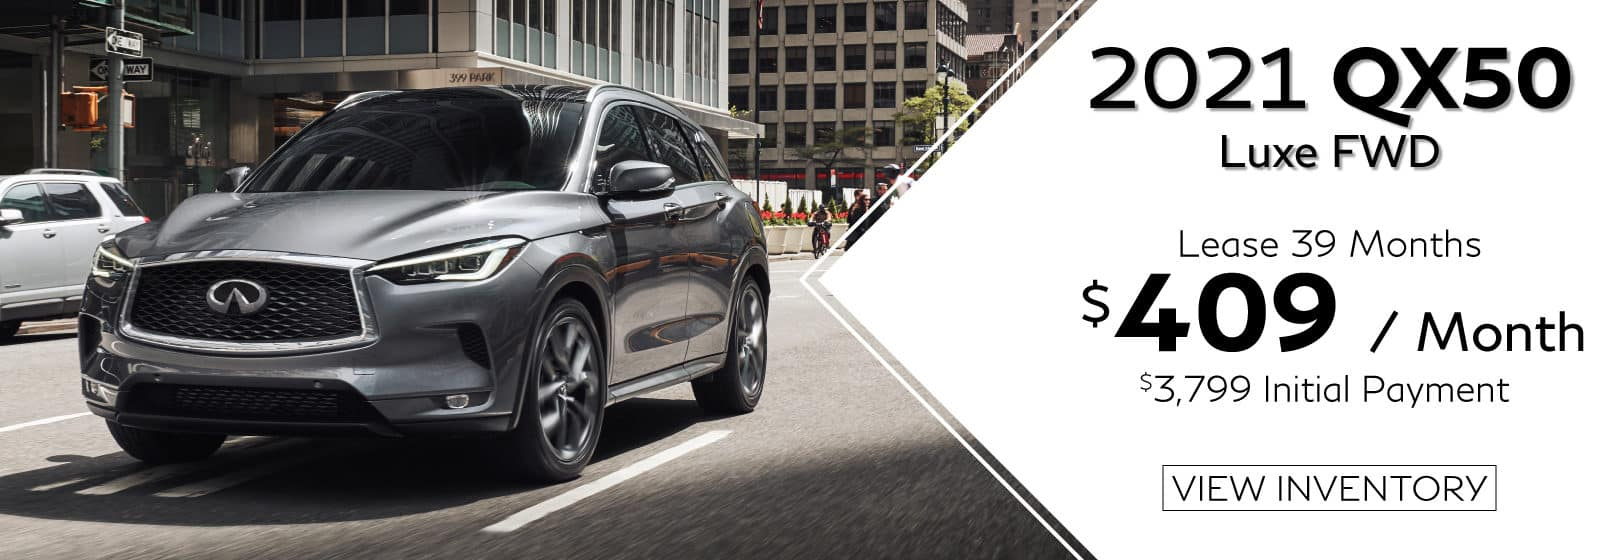 2021 QX50 Luxe. Lease for $409 a month. View Inventory.